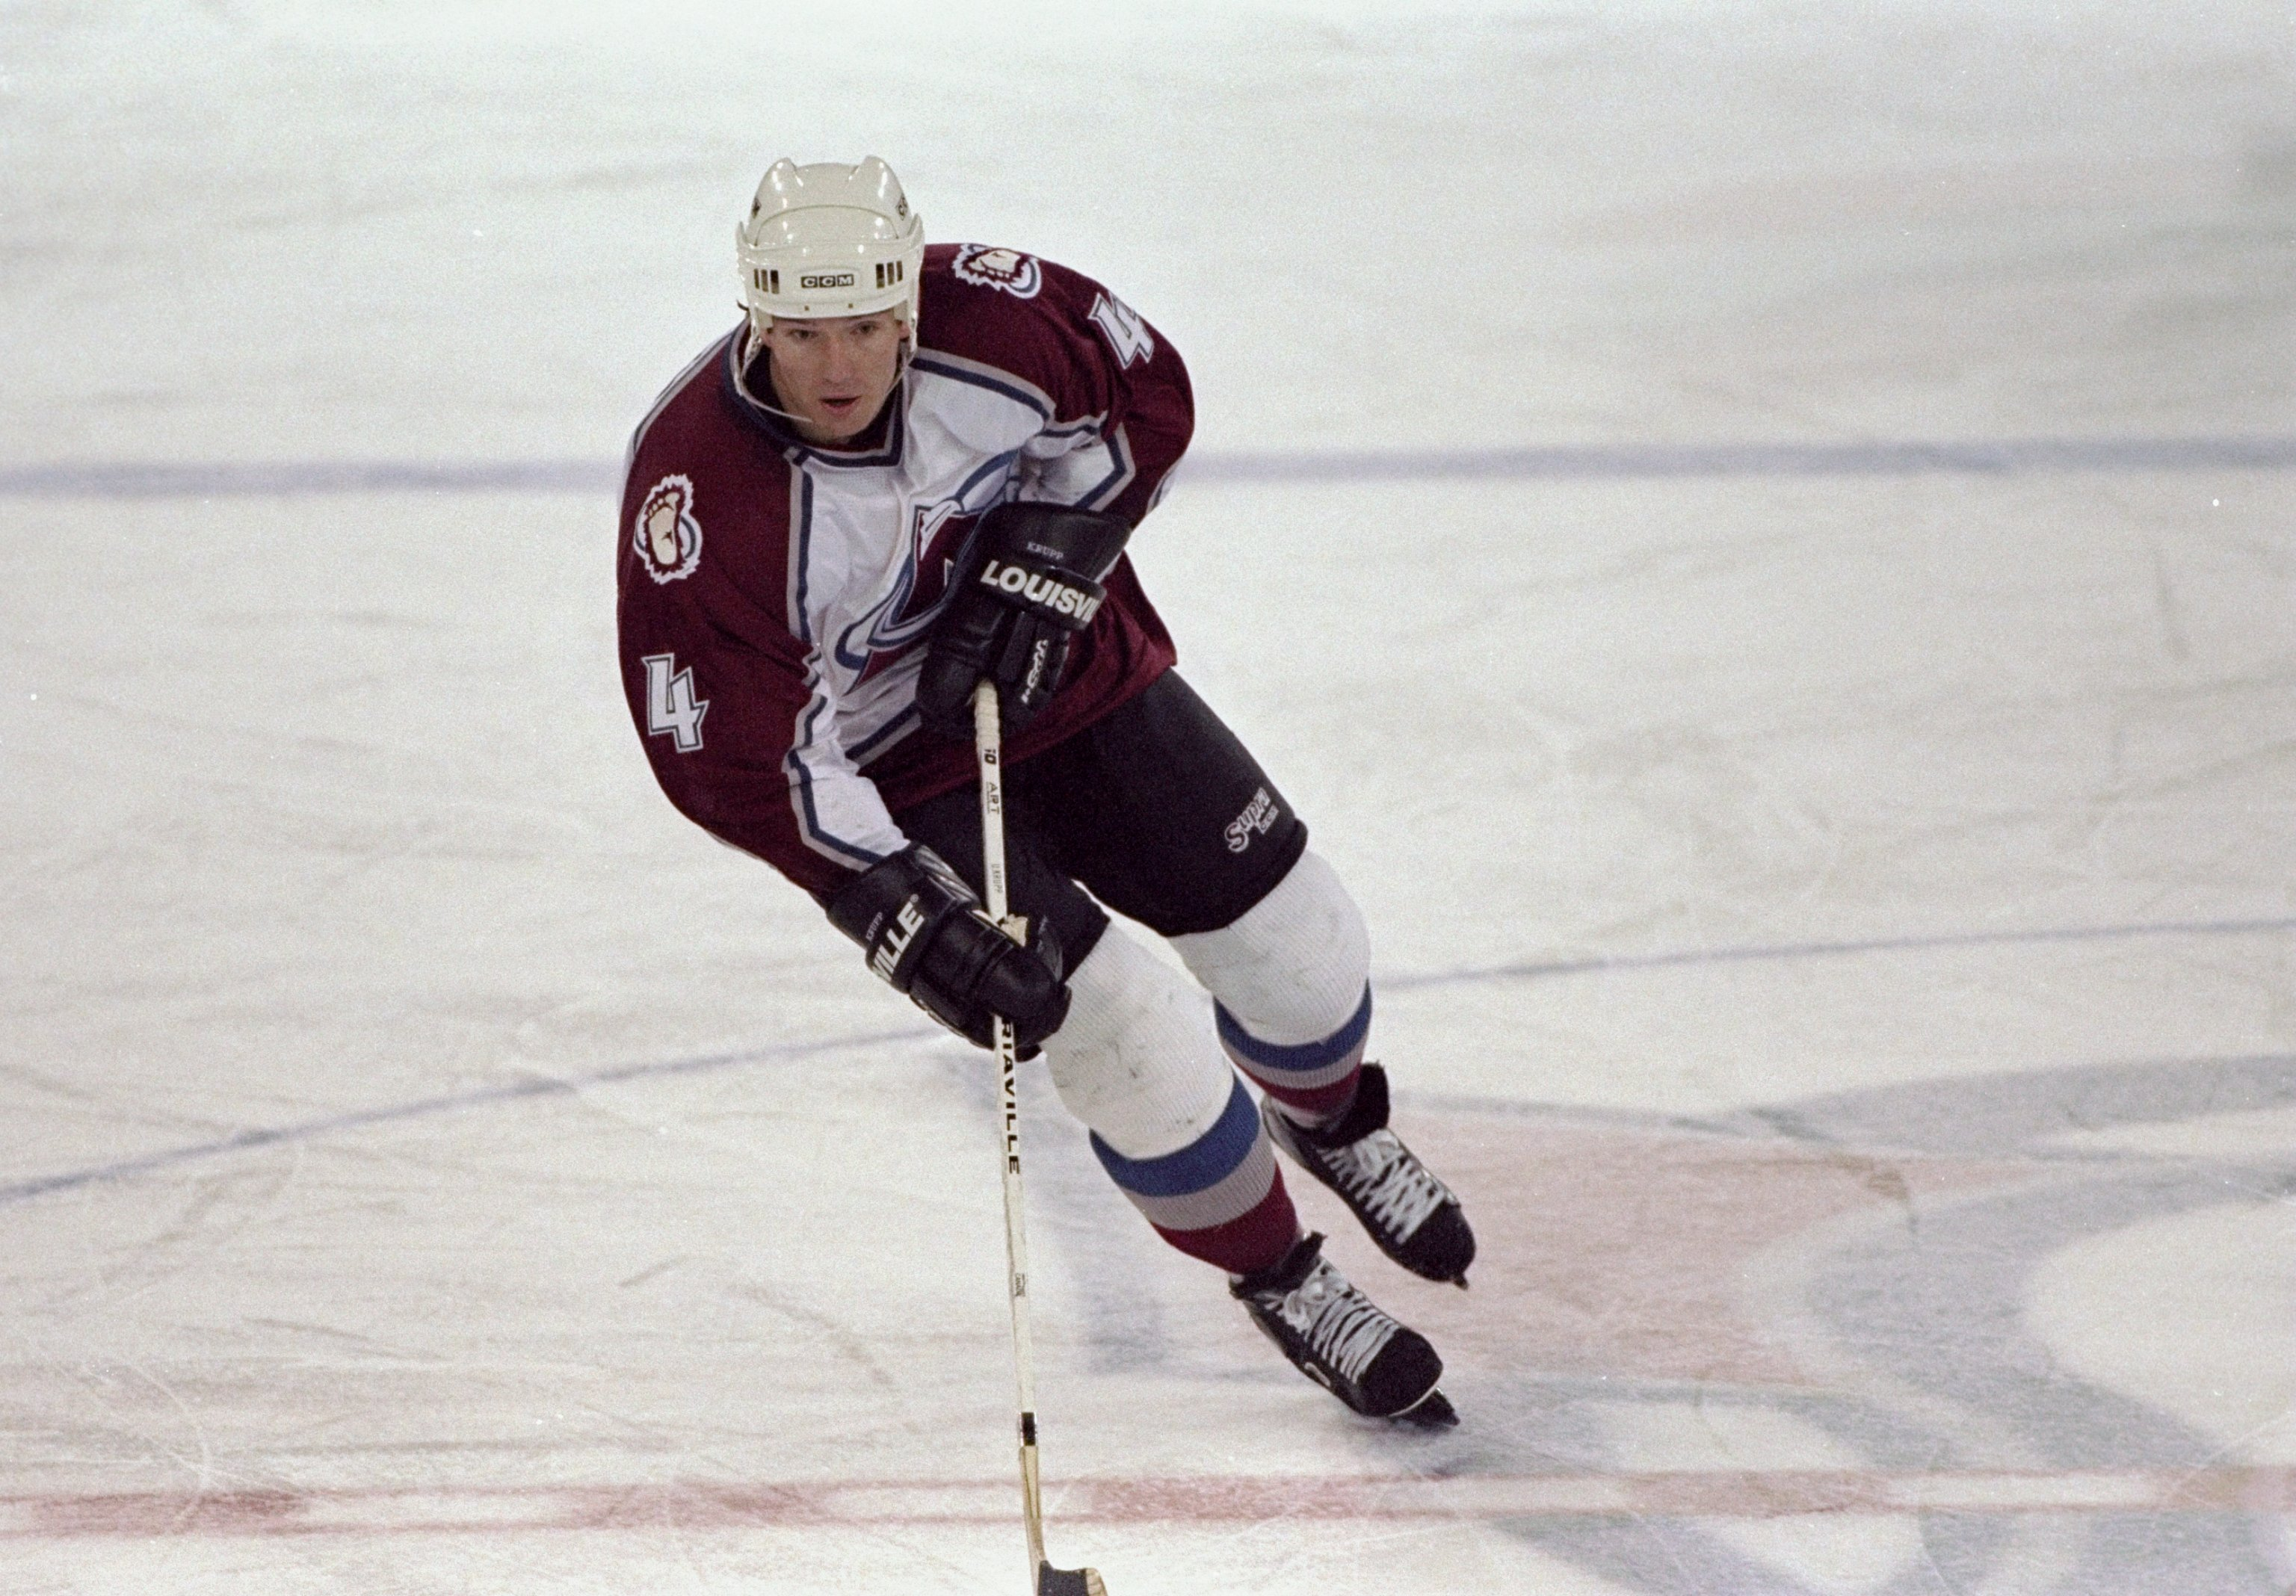 20 Nov 1996: Defenseman Uwe Krupp of the Colorado Avalanche in action during a game against the Phoenix Coyotes at the McNichols Sports Arena in Denver, Colorado. The Avalanche won the game, 6-0. (credit: Jamie Squire/Allsport/Getty Images)